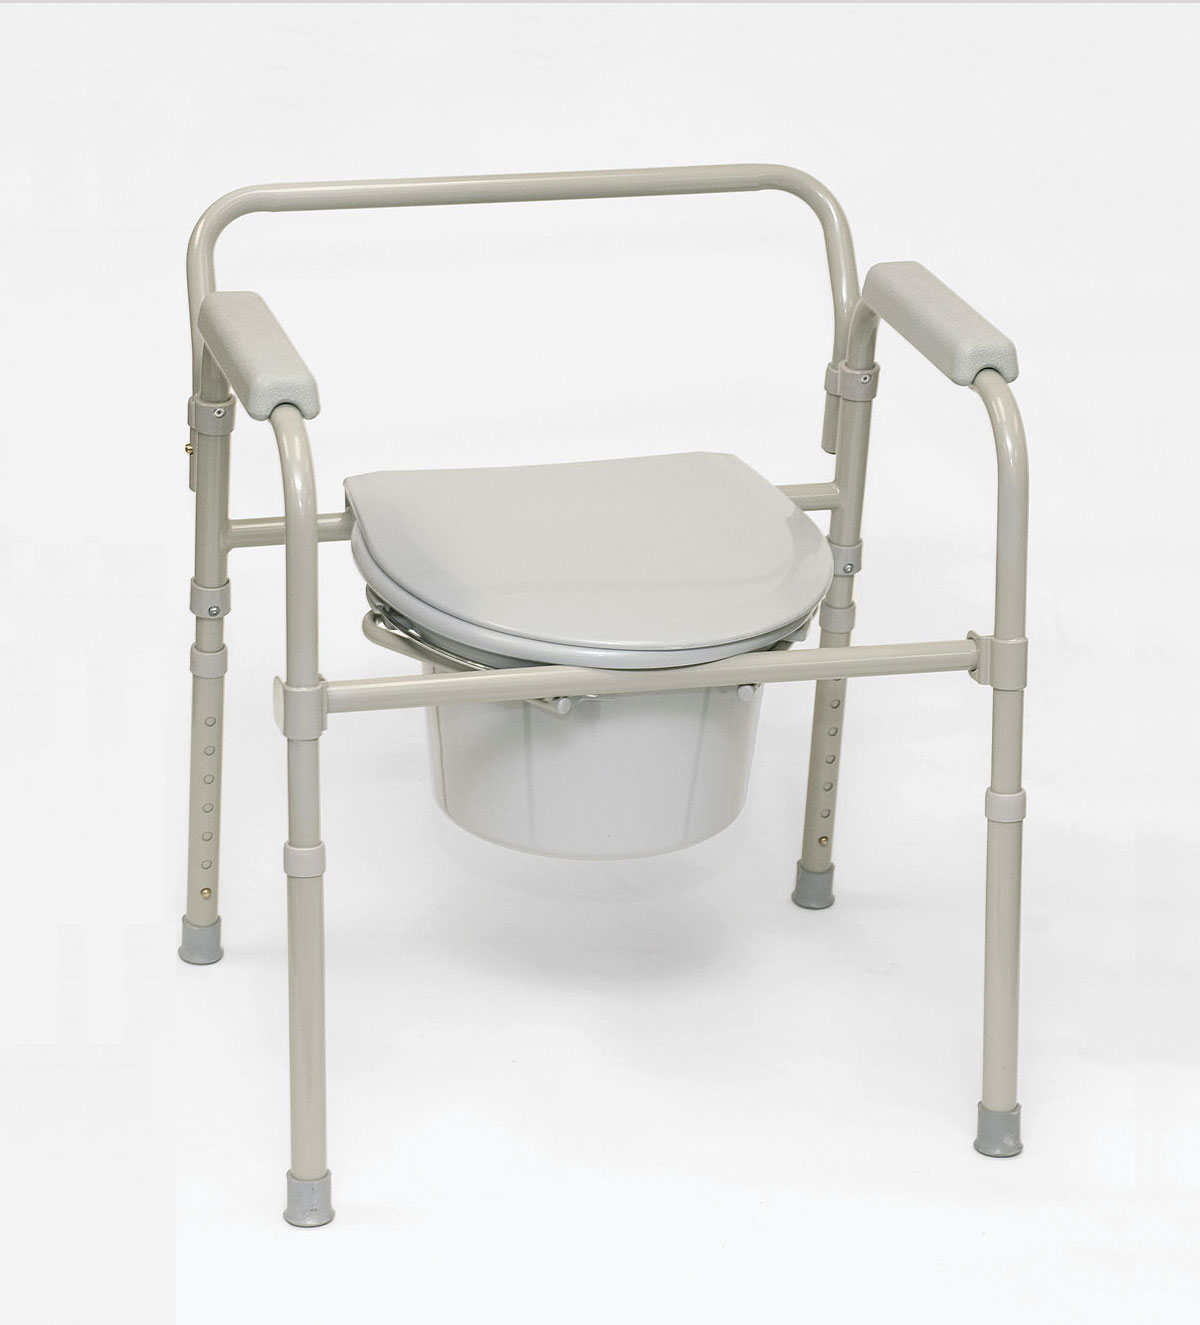 Toilet Riser | Lowes Bathroom Commodes | Commodes at Lowes